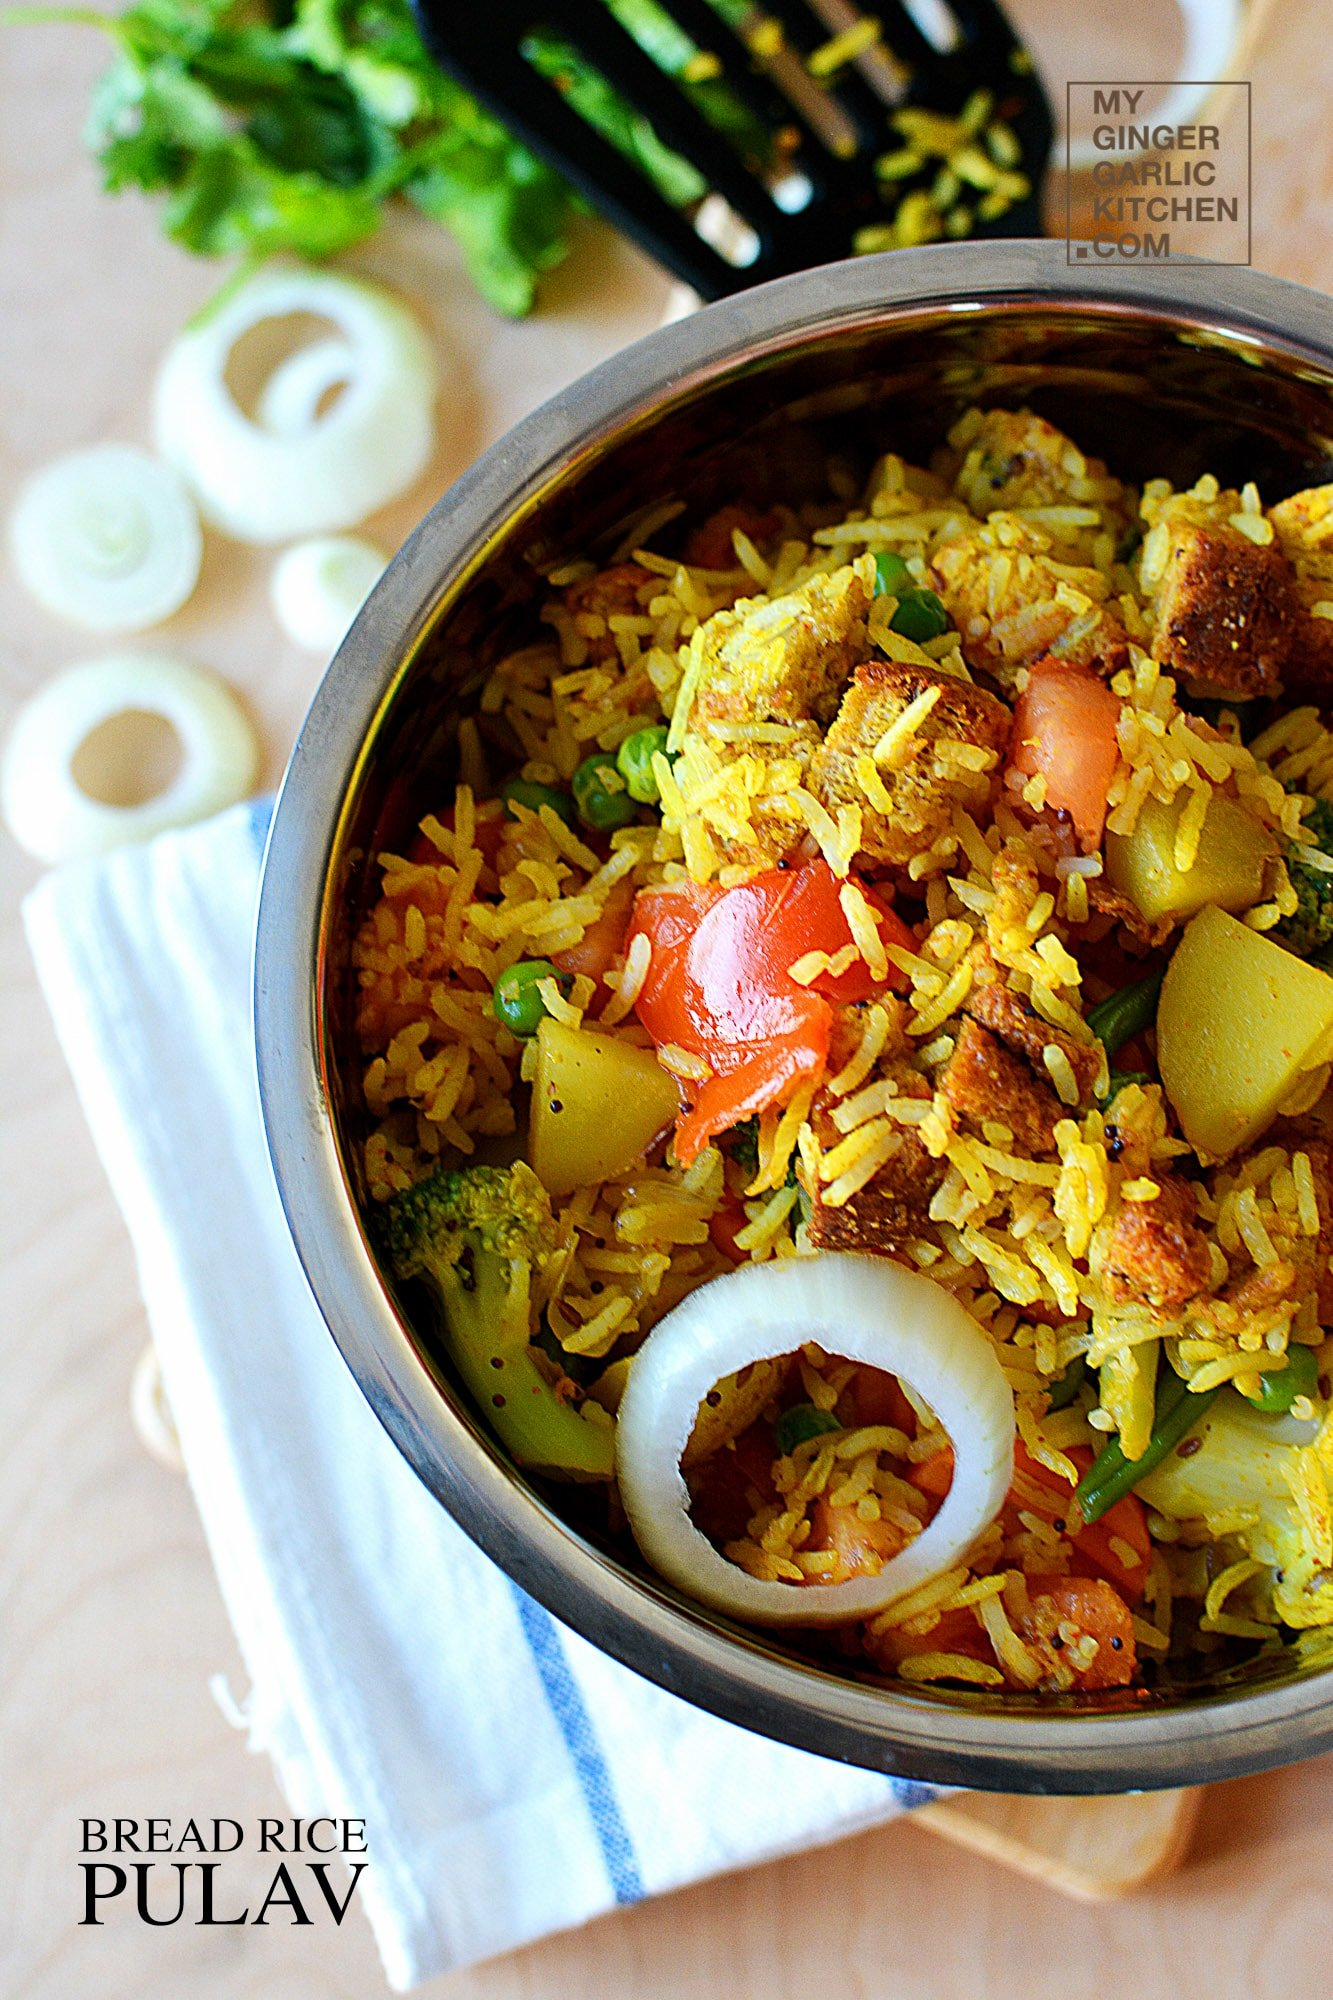 Image of Express Bread Rice Pulav